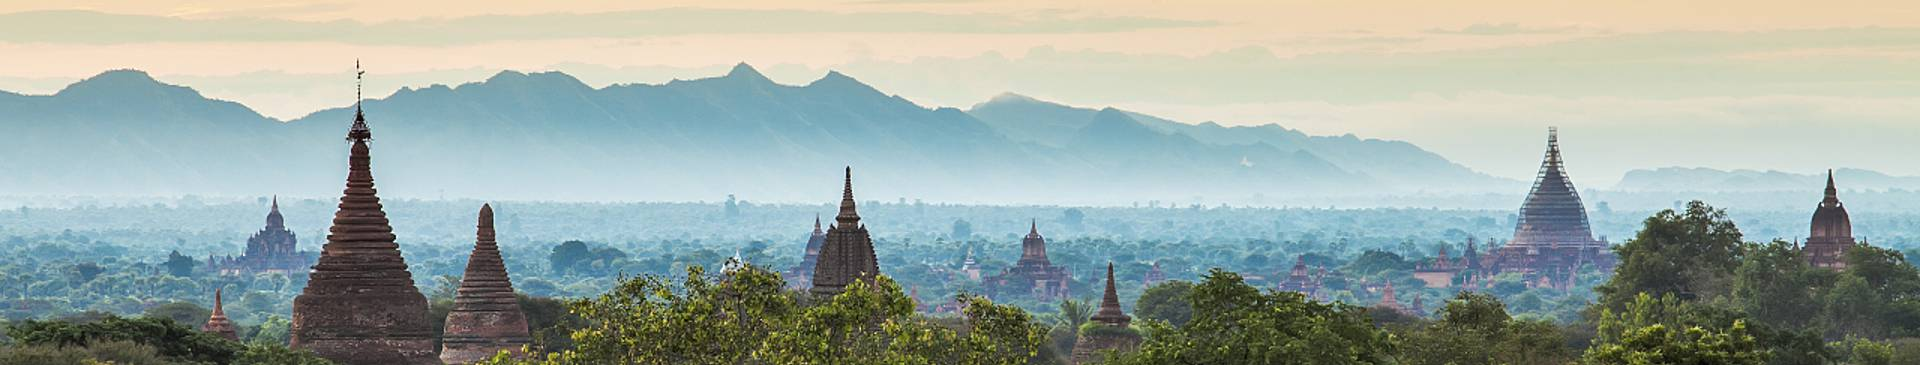 Myanmar im September